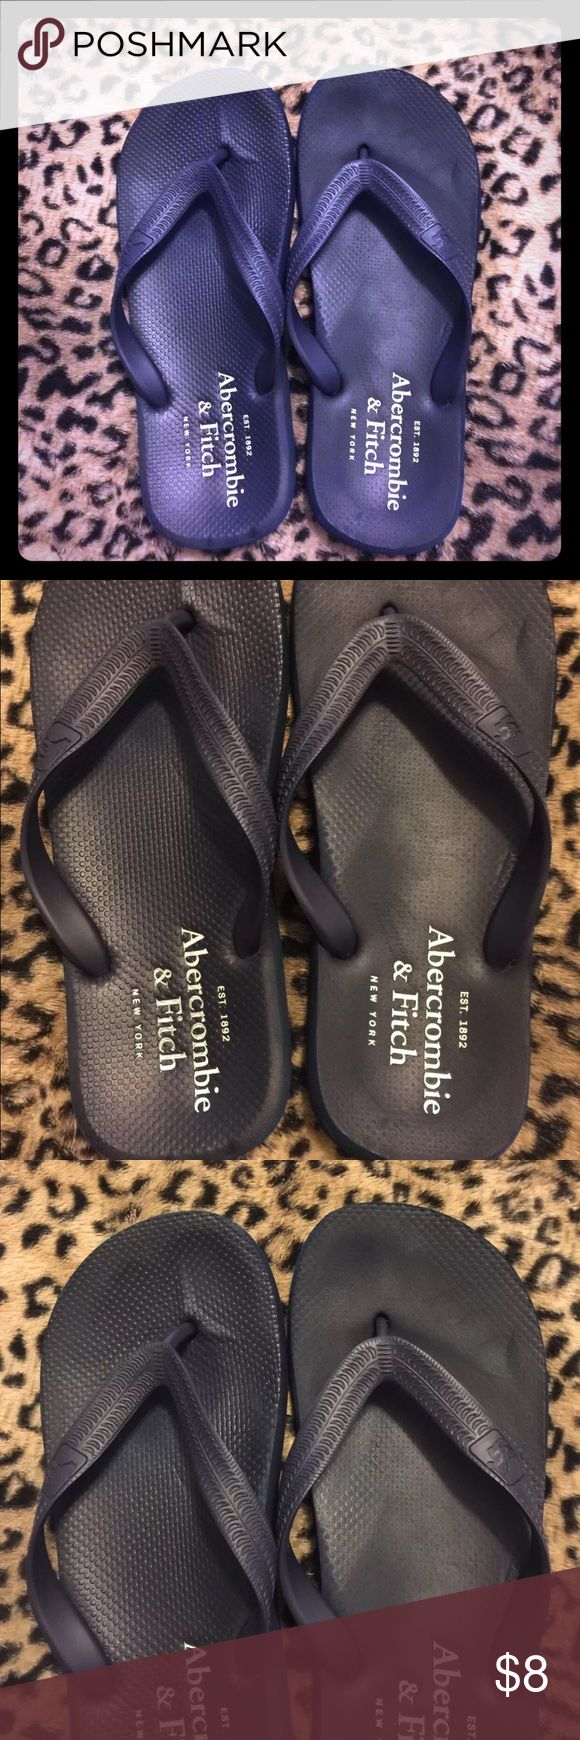 Abercrombie and fitch men's sandals Size 11 in great condition Abercrombie & Fitch Shoes Sandals & Flip-Flops